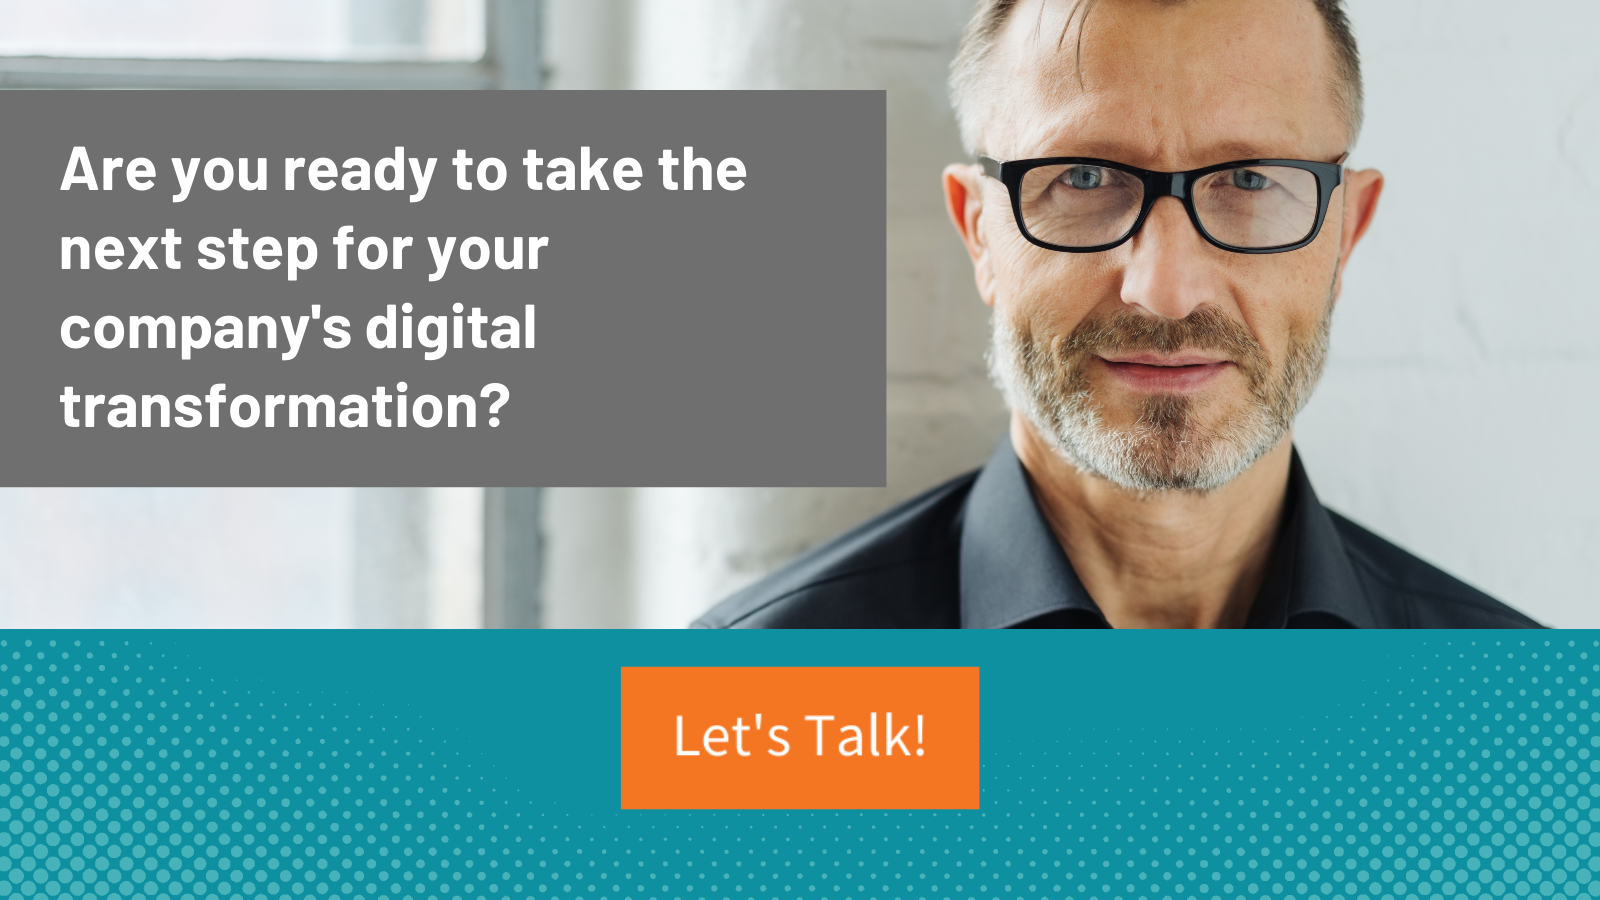 Get started with a digital transformation